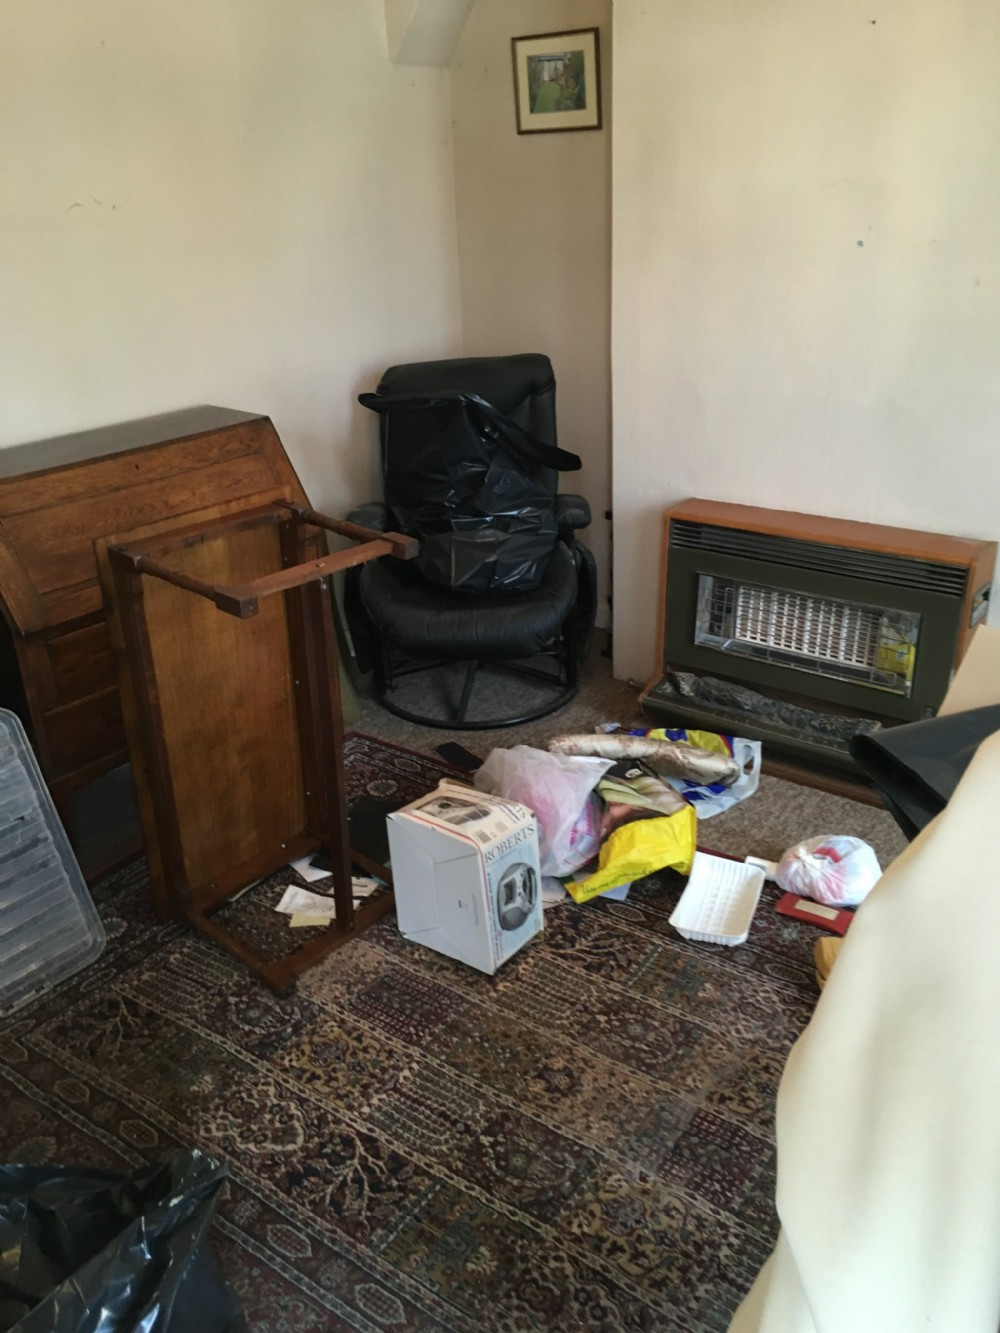 before and after pics of house clearance in loughton